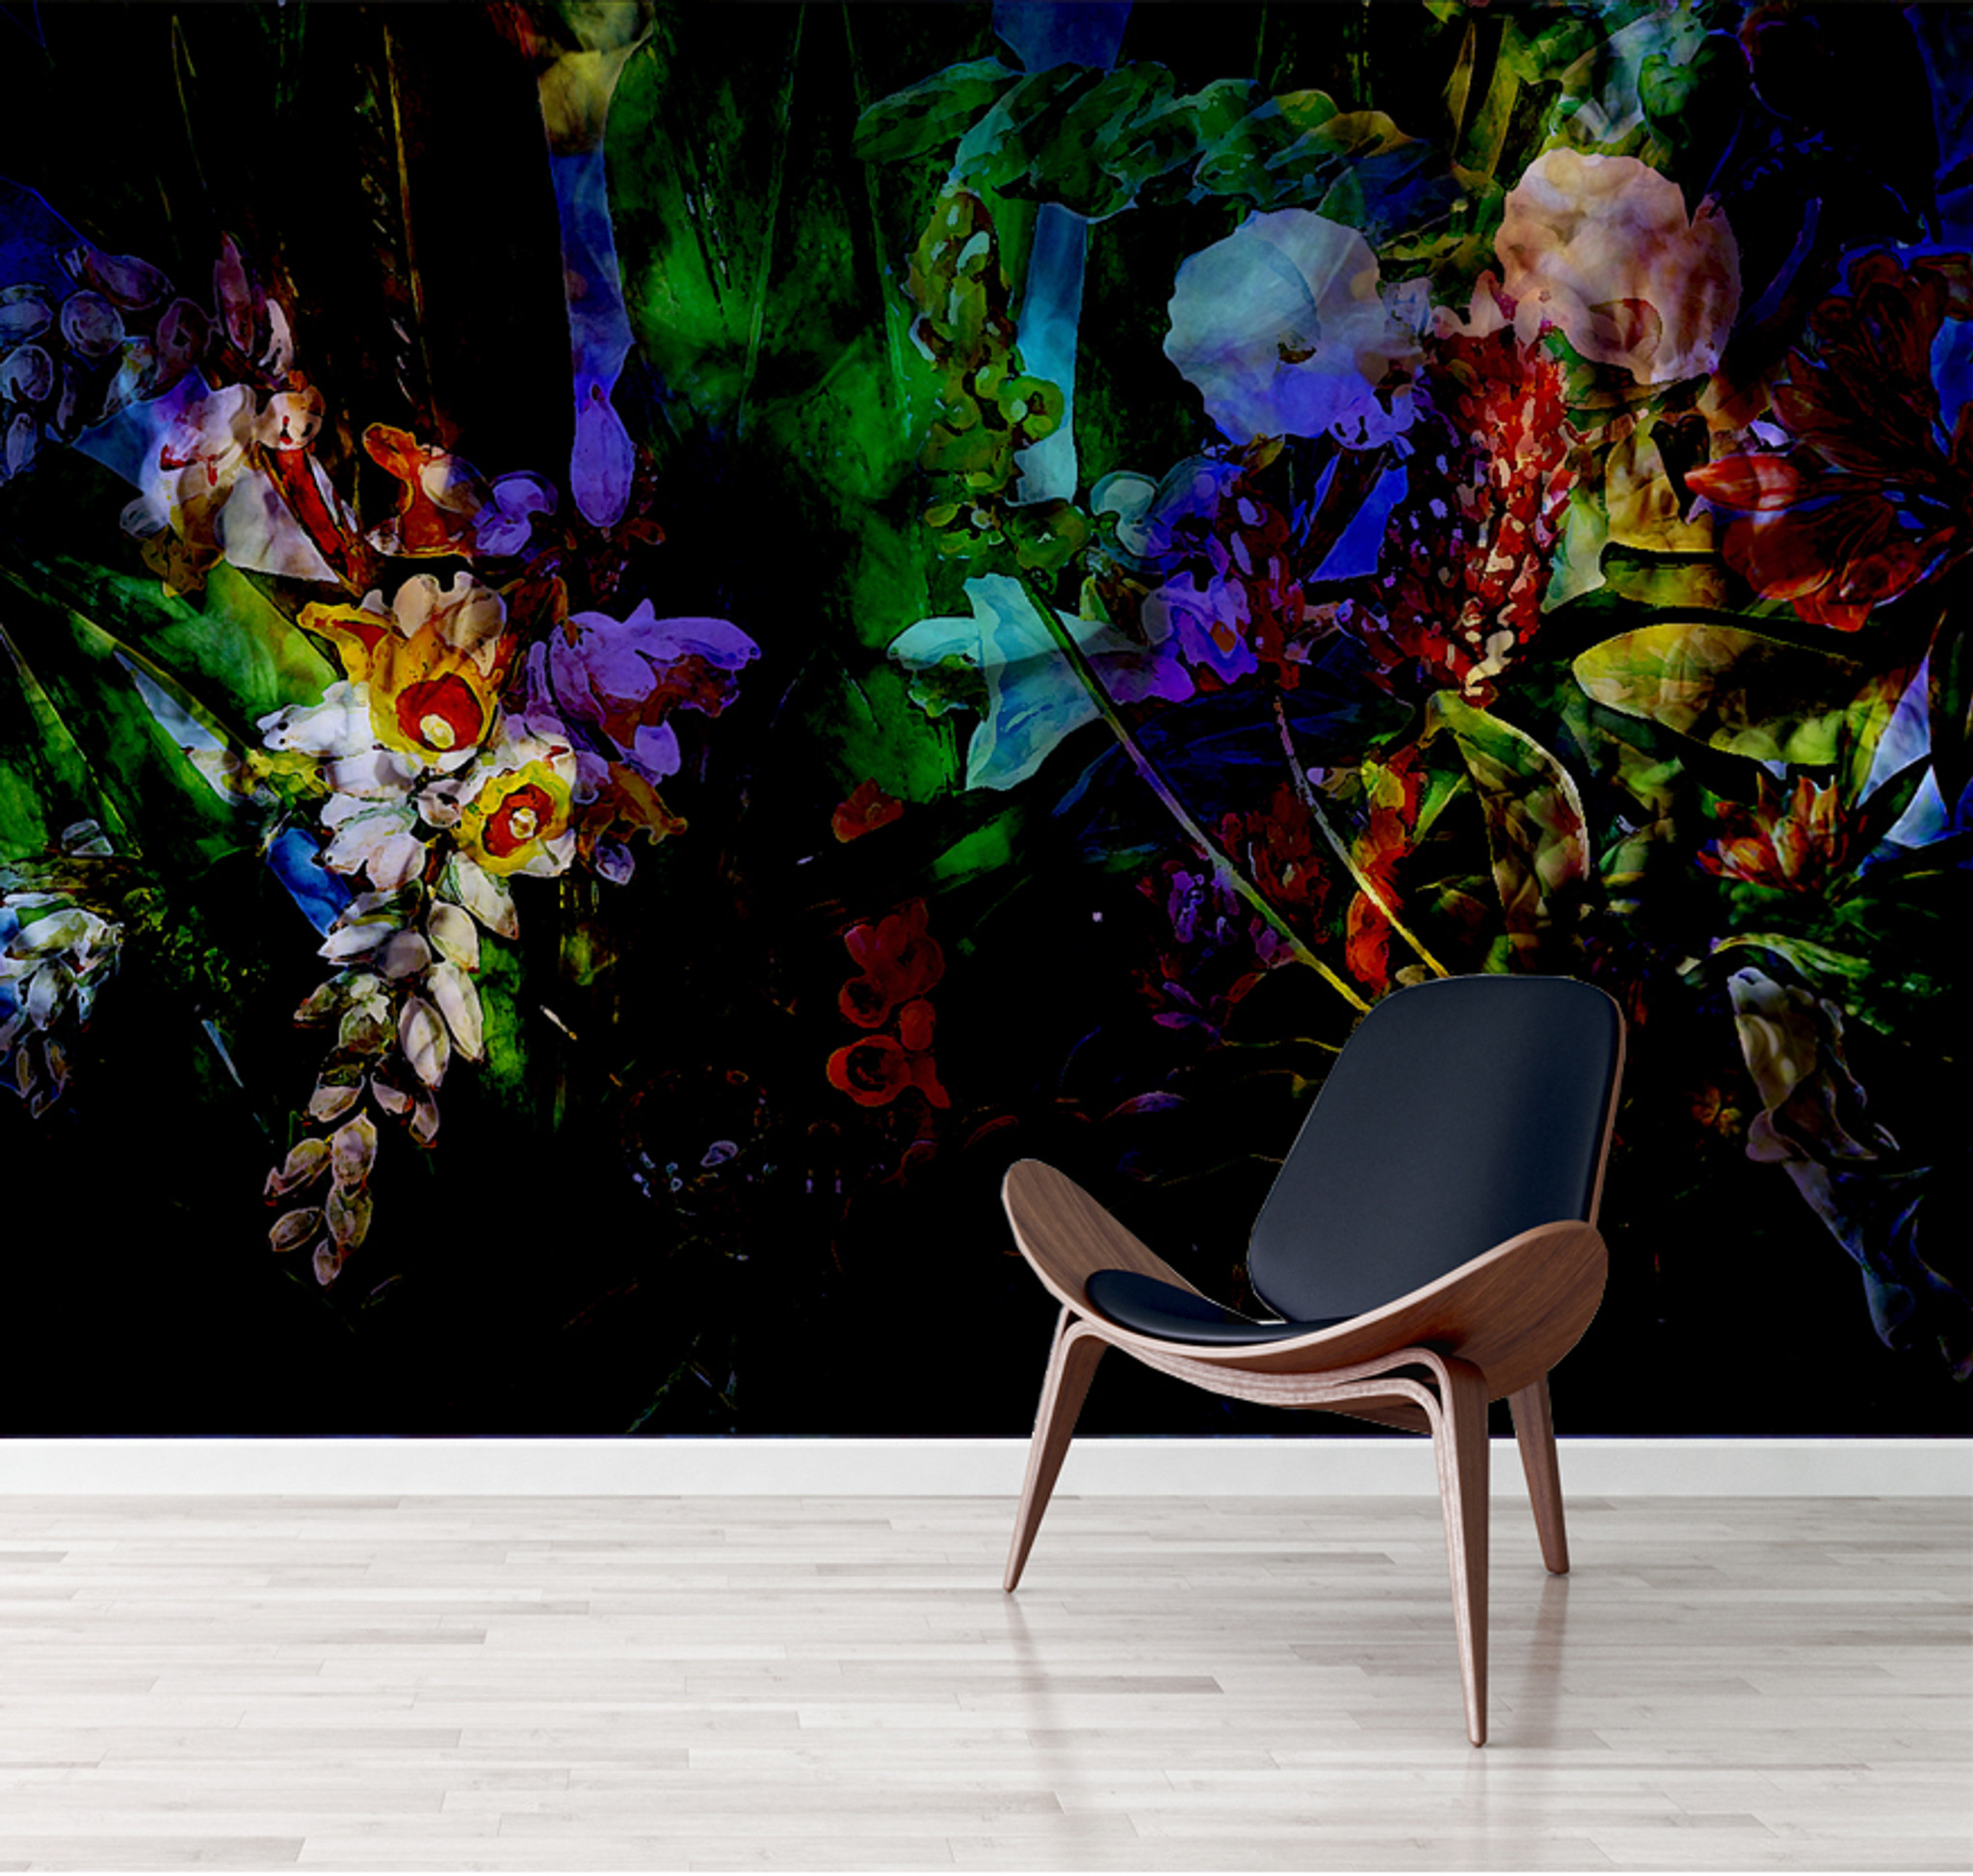 Wallpaper - Flower Power - Luminescent